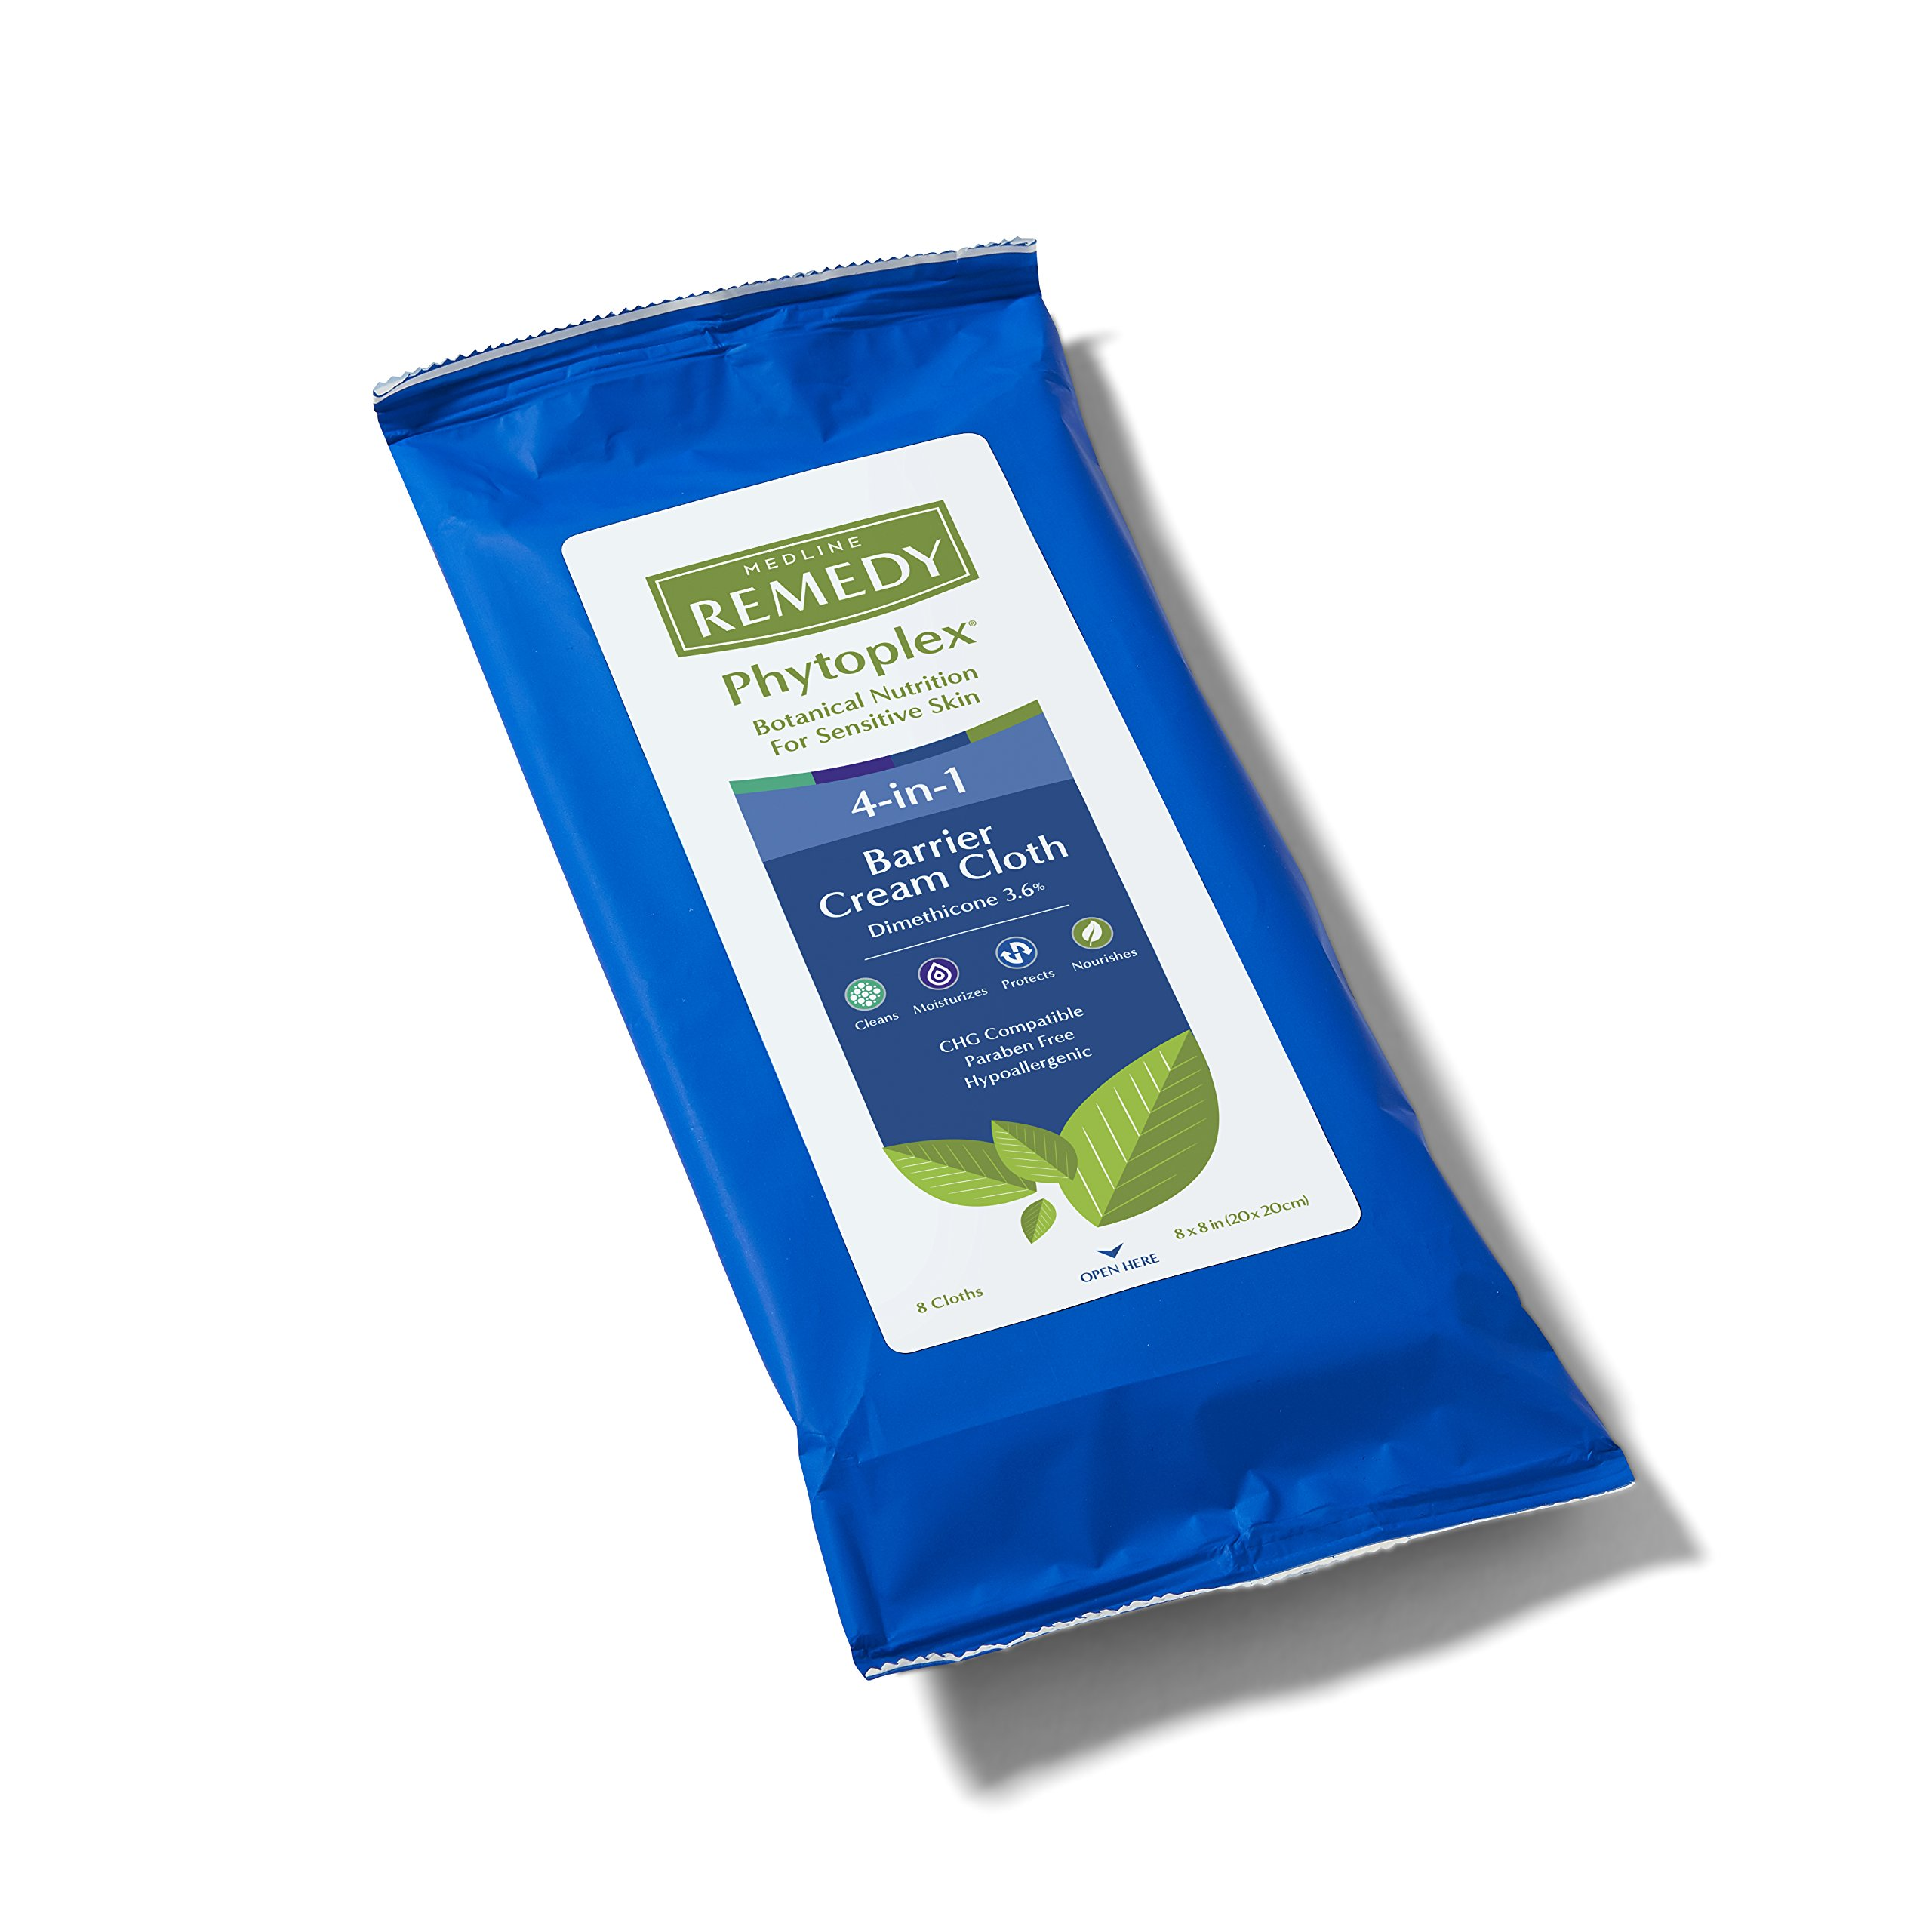 Medline MSC092508 Remedy Phytoplex 4-in-1 Barrier Cream Cloths with Dimethicone (Pack of 256) by Medline (Image #2)